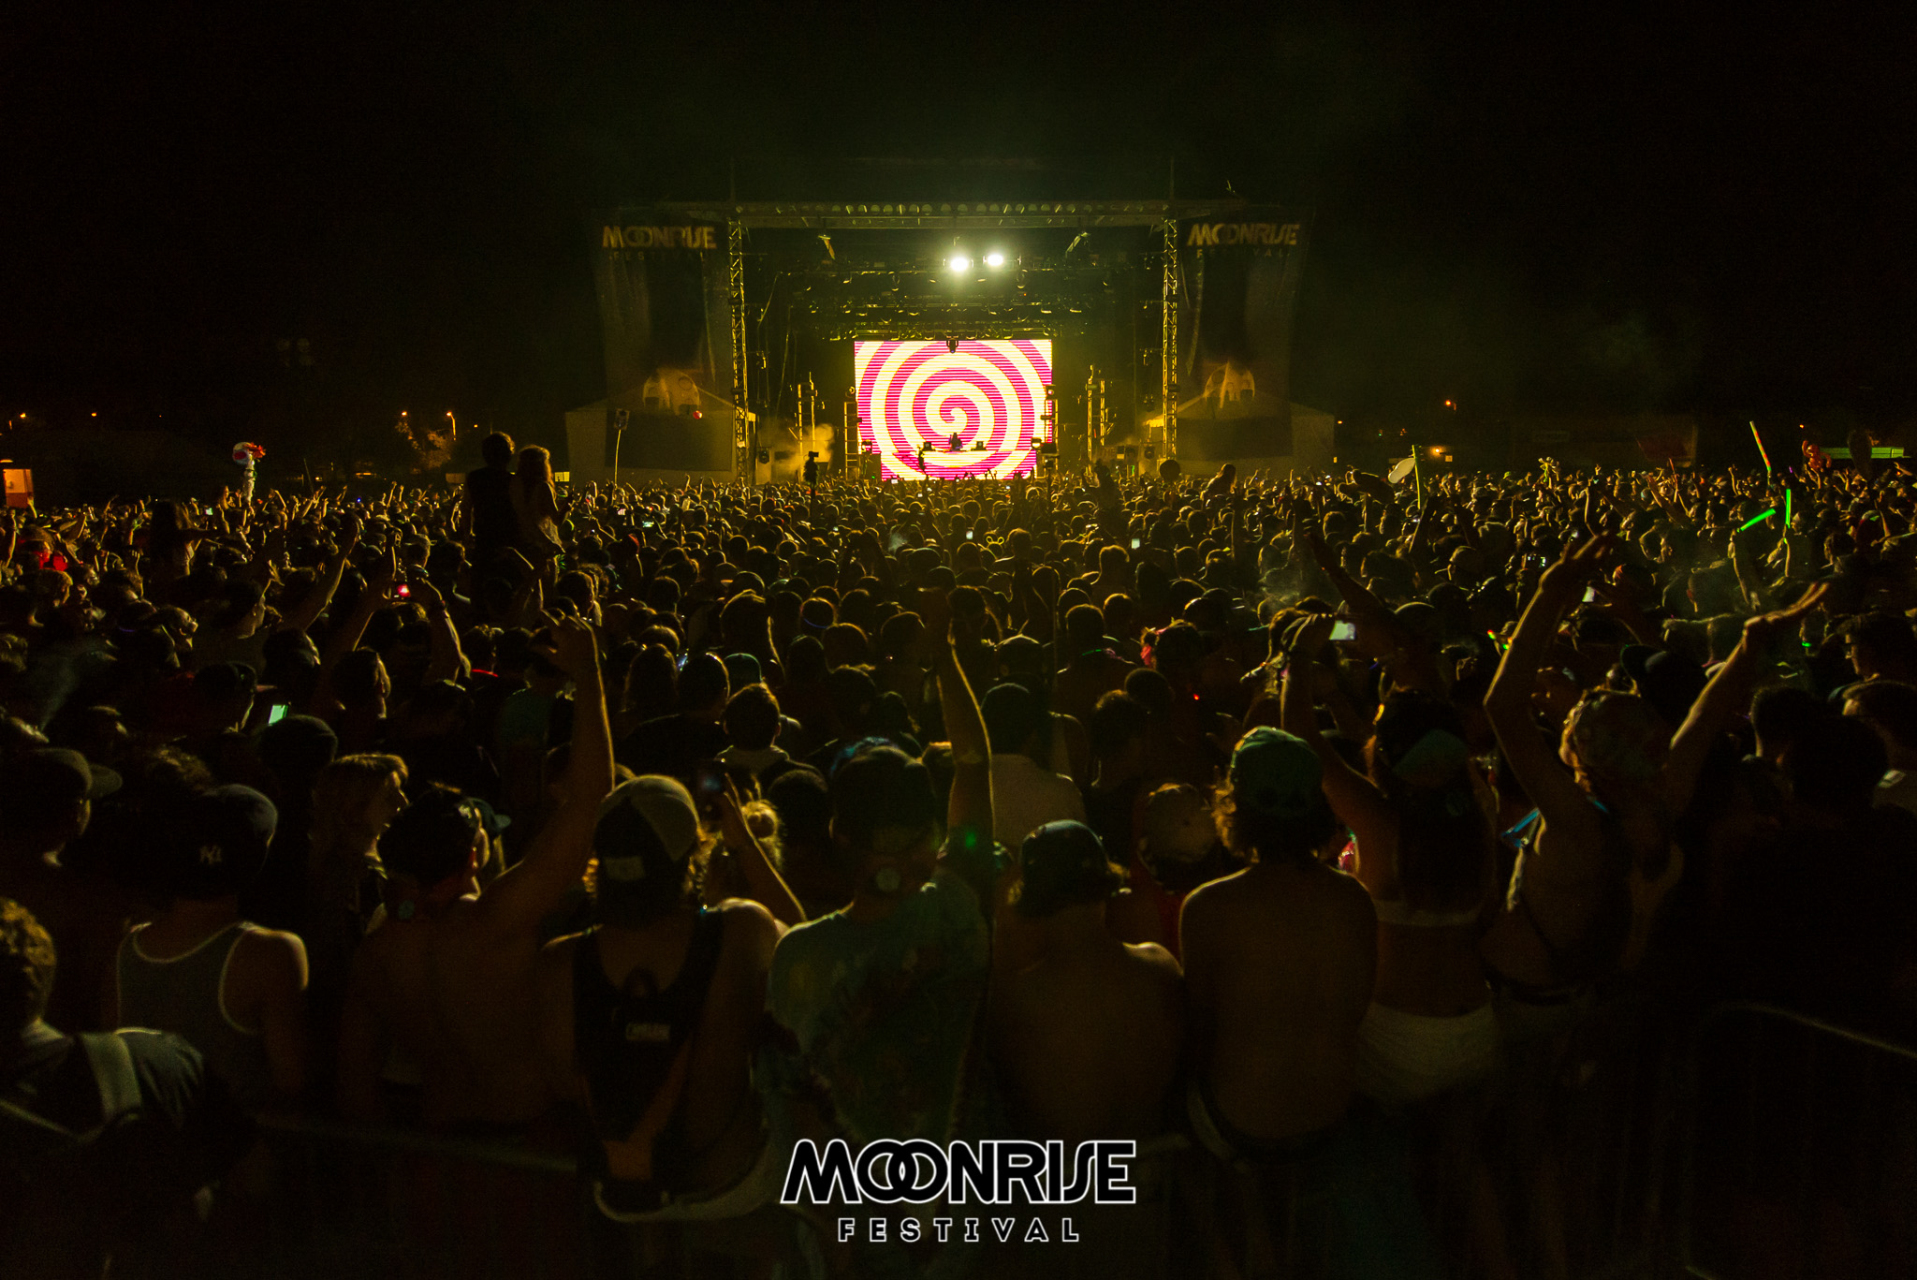 Moonrise_day2-1